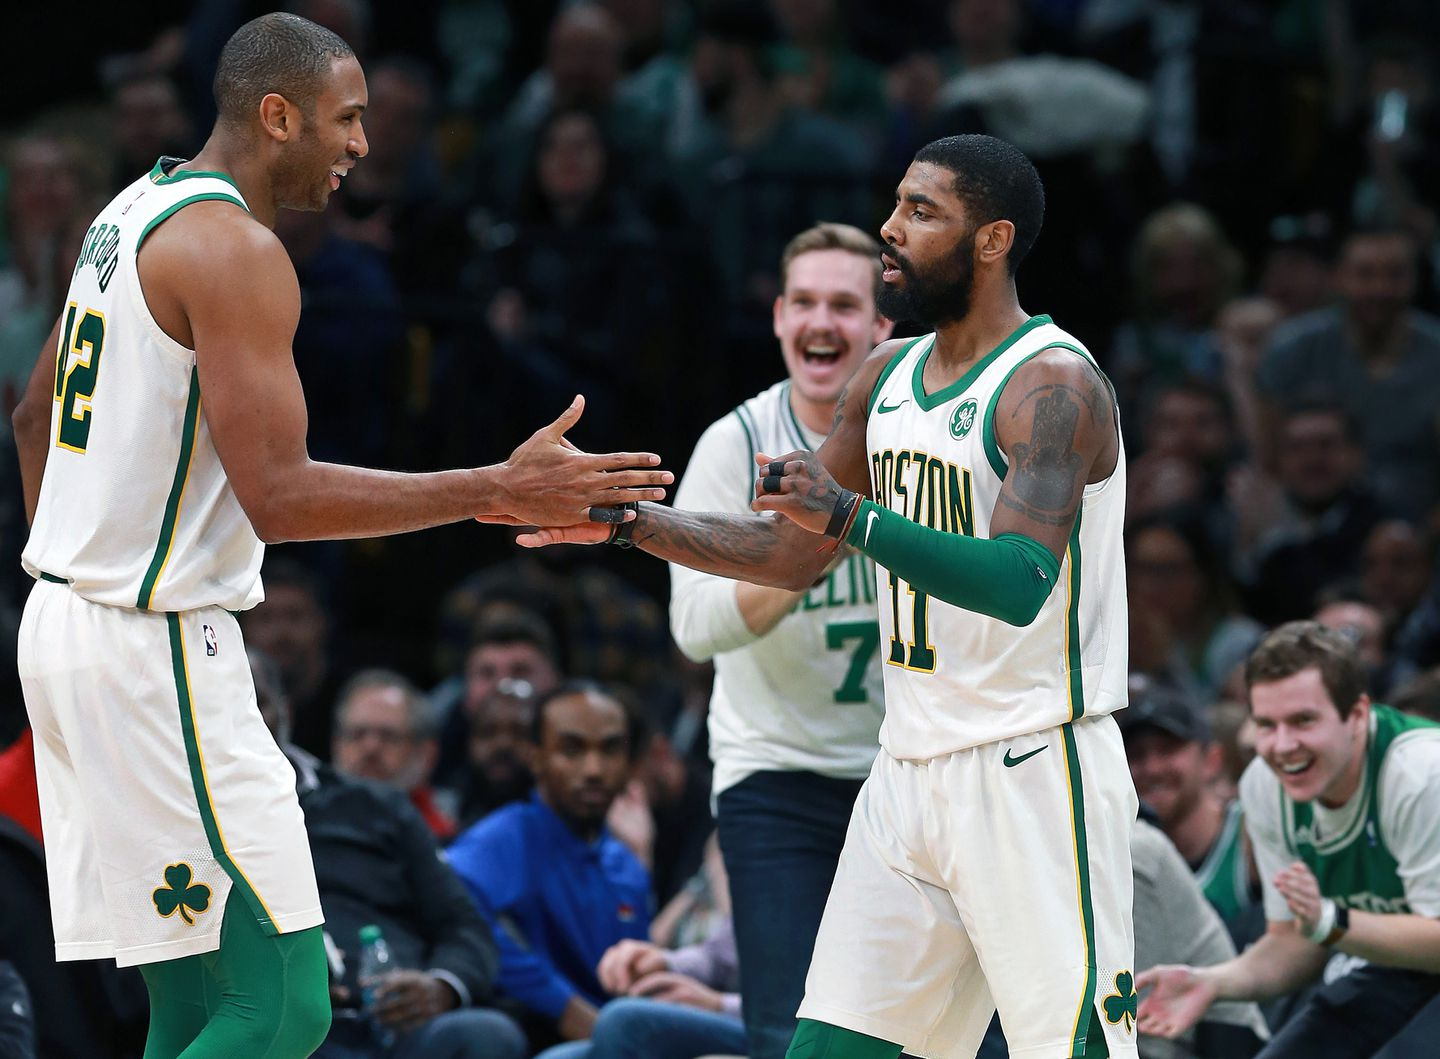 new arrival 910f1 0953d Celtics fans exulted at the sight of Kyrie Irving (11) celebrating with  teammate Al